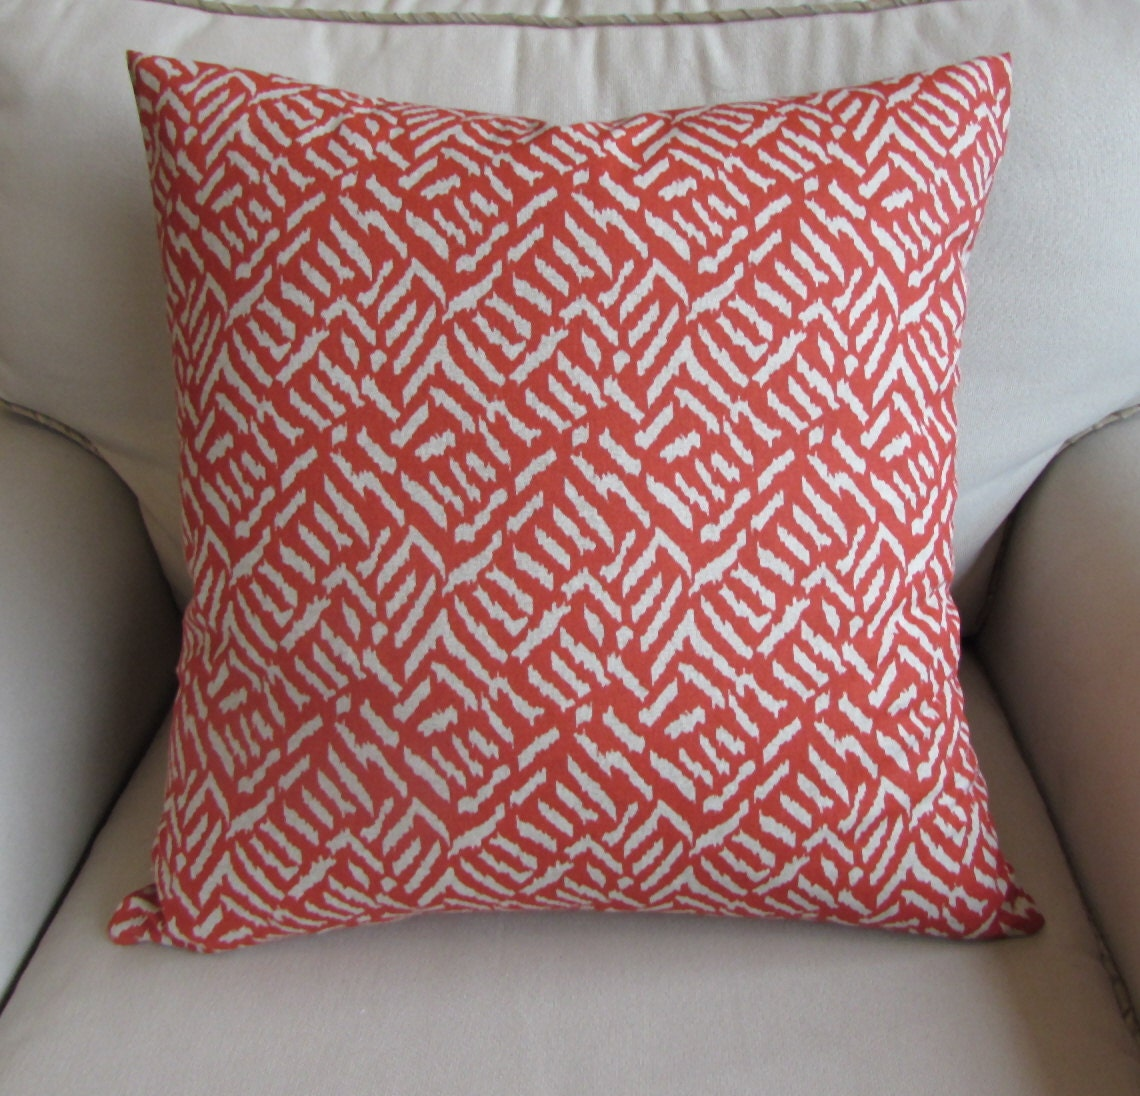 26x26 euro pillow covers At Wayfair, we want to make sure you find the best home goods when you shop online. You have searched for 26x26 euro pillow covers and this page displays the closest product matches we have for 26x26 euro pillow covers to buy online.